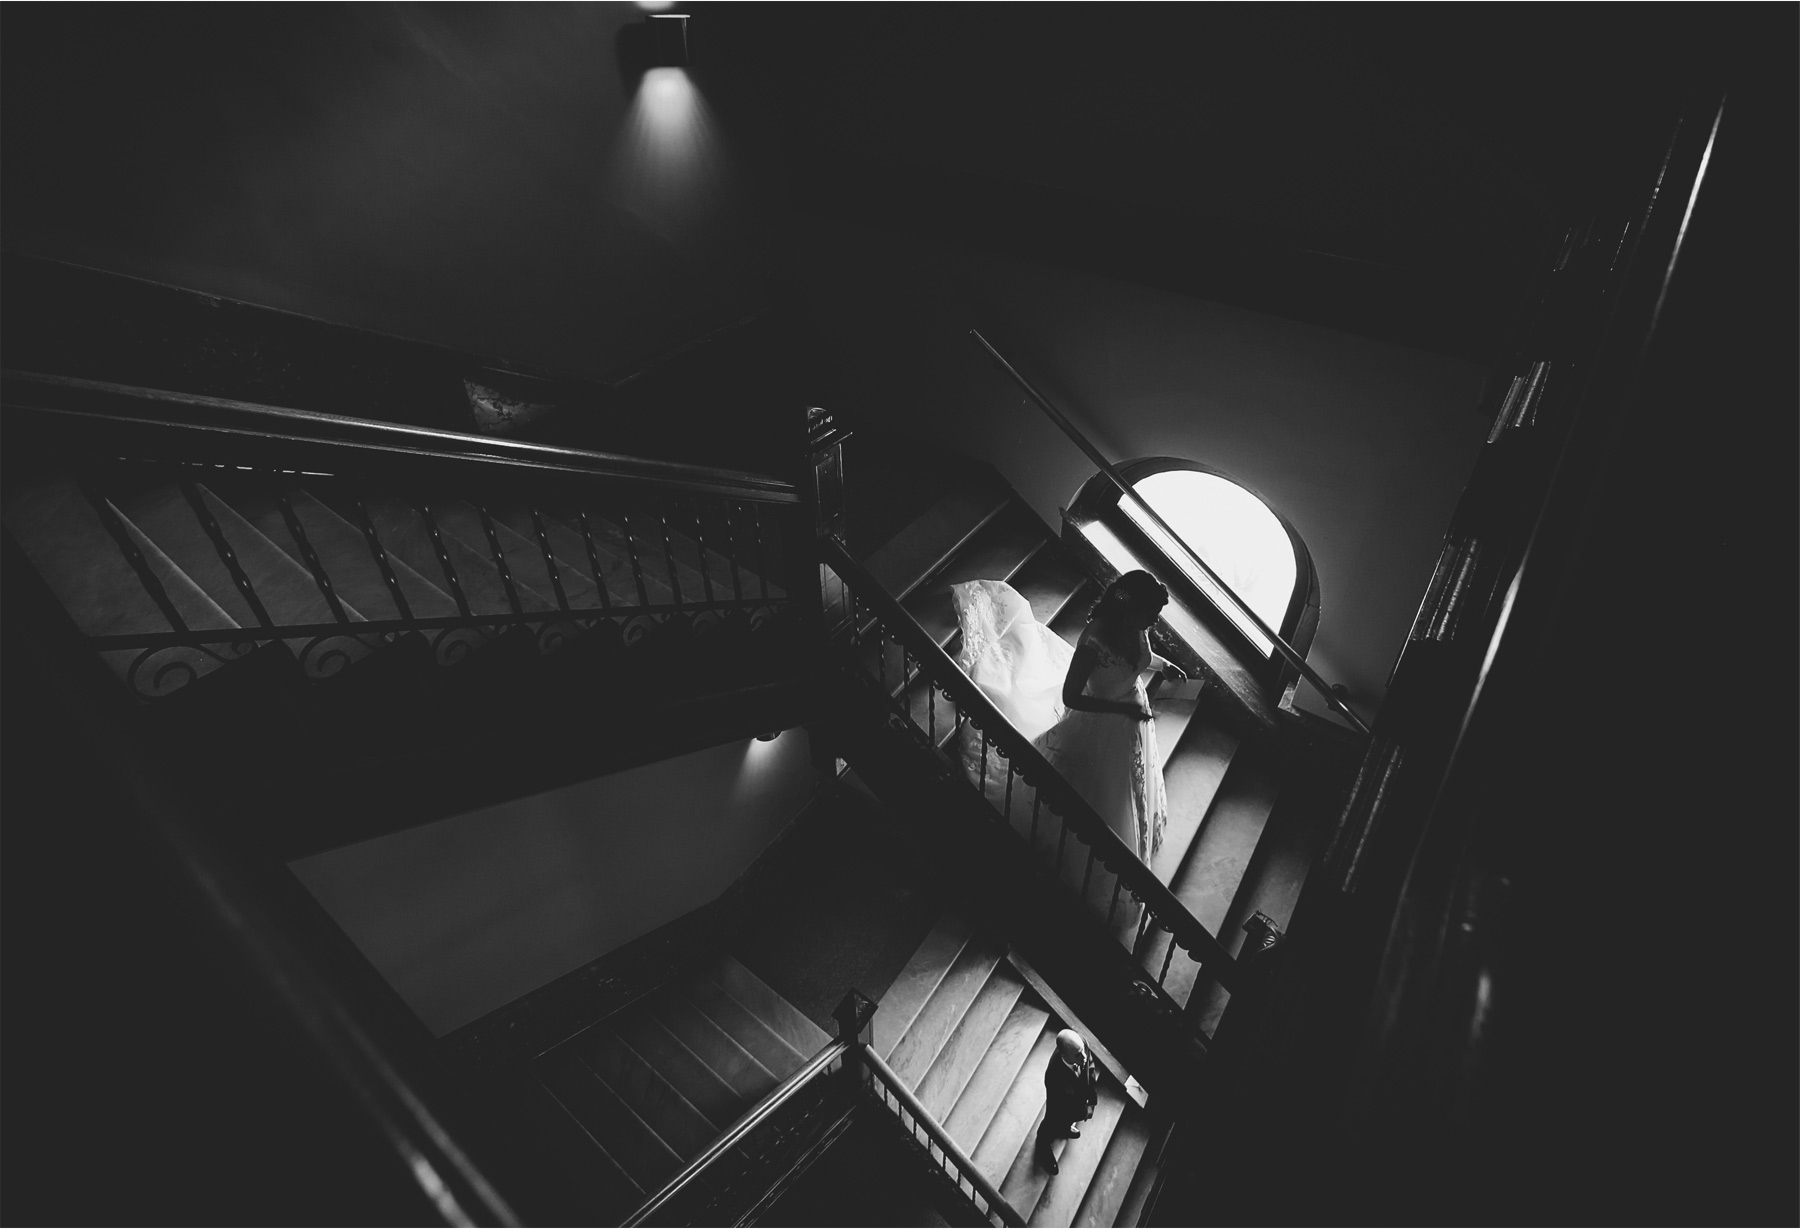 06-Saint-Paul-Minnesota-Wedding-Photographer-by-Andrew-Vick-Photography-Winter-New-Years-Eve-Embassy-Suites-First-Meeting-Look-Bride-Groom-Notes-Letter-Staircase-Stairs-Black-and-White-Emily-and-Michael.jpg